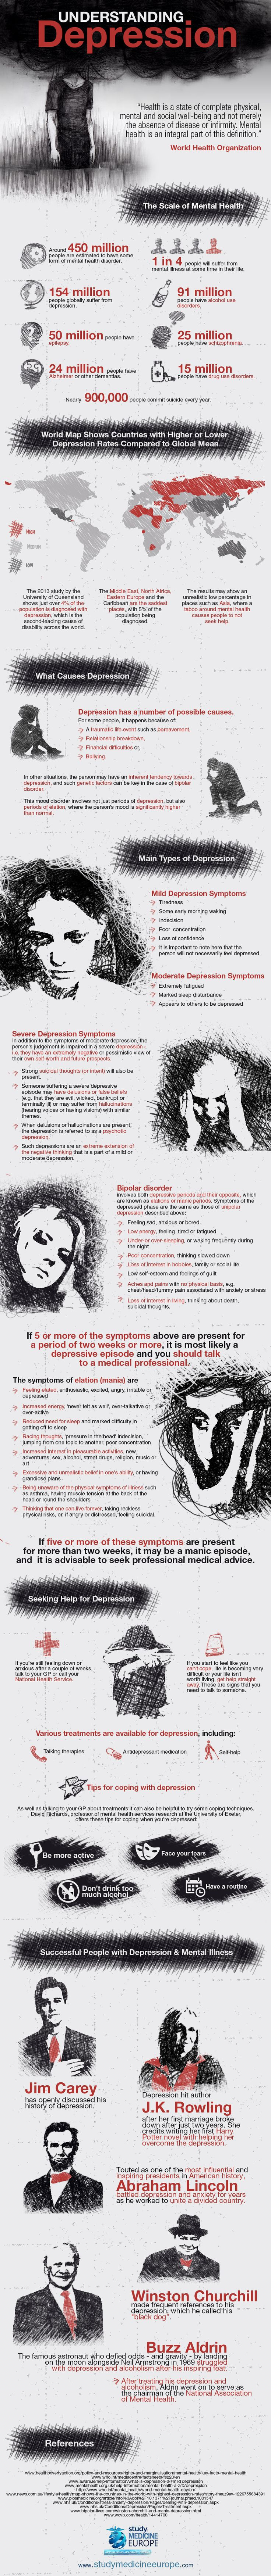 An Infographic to Help You Understand Depression #Depression #SelfHelp (Happy to repost for another website, but you should also visit my website! greenwoodcounselingcenter.com)